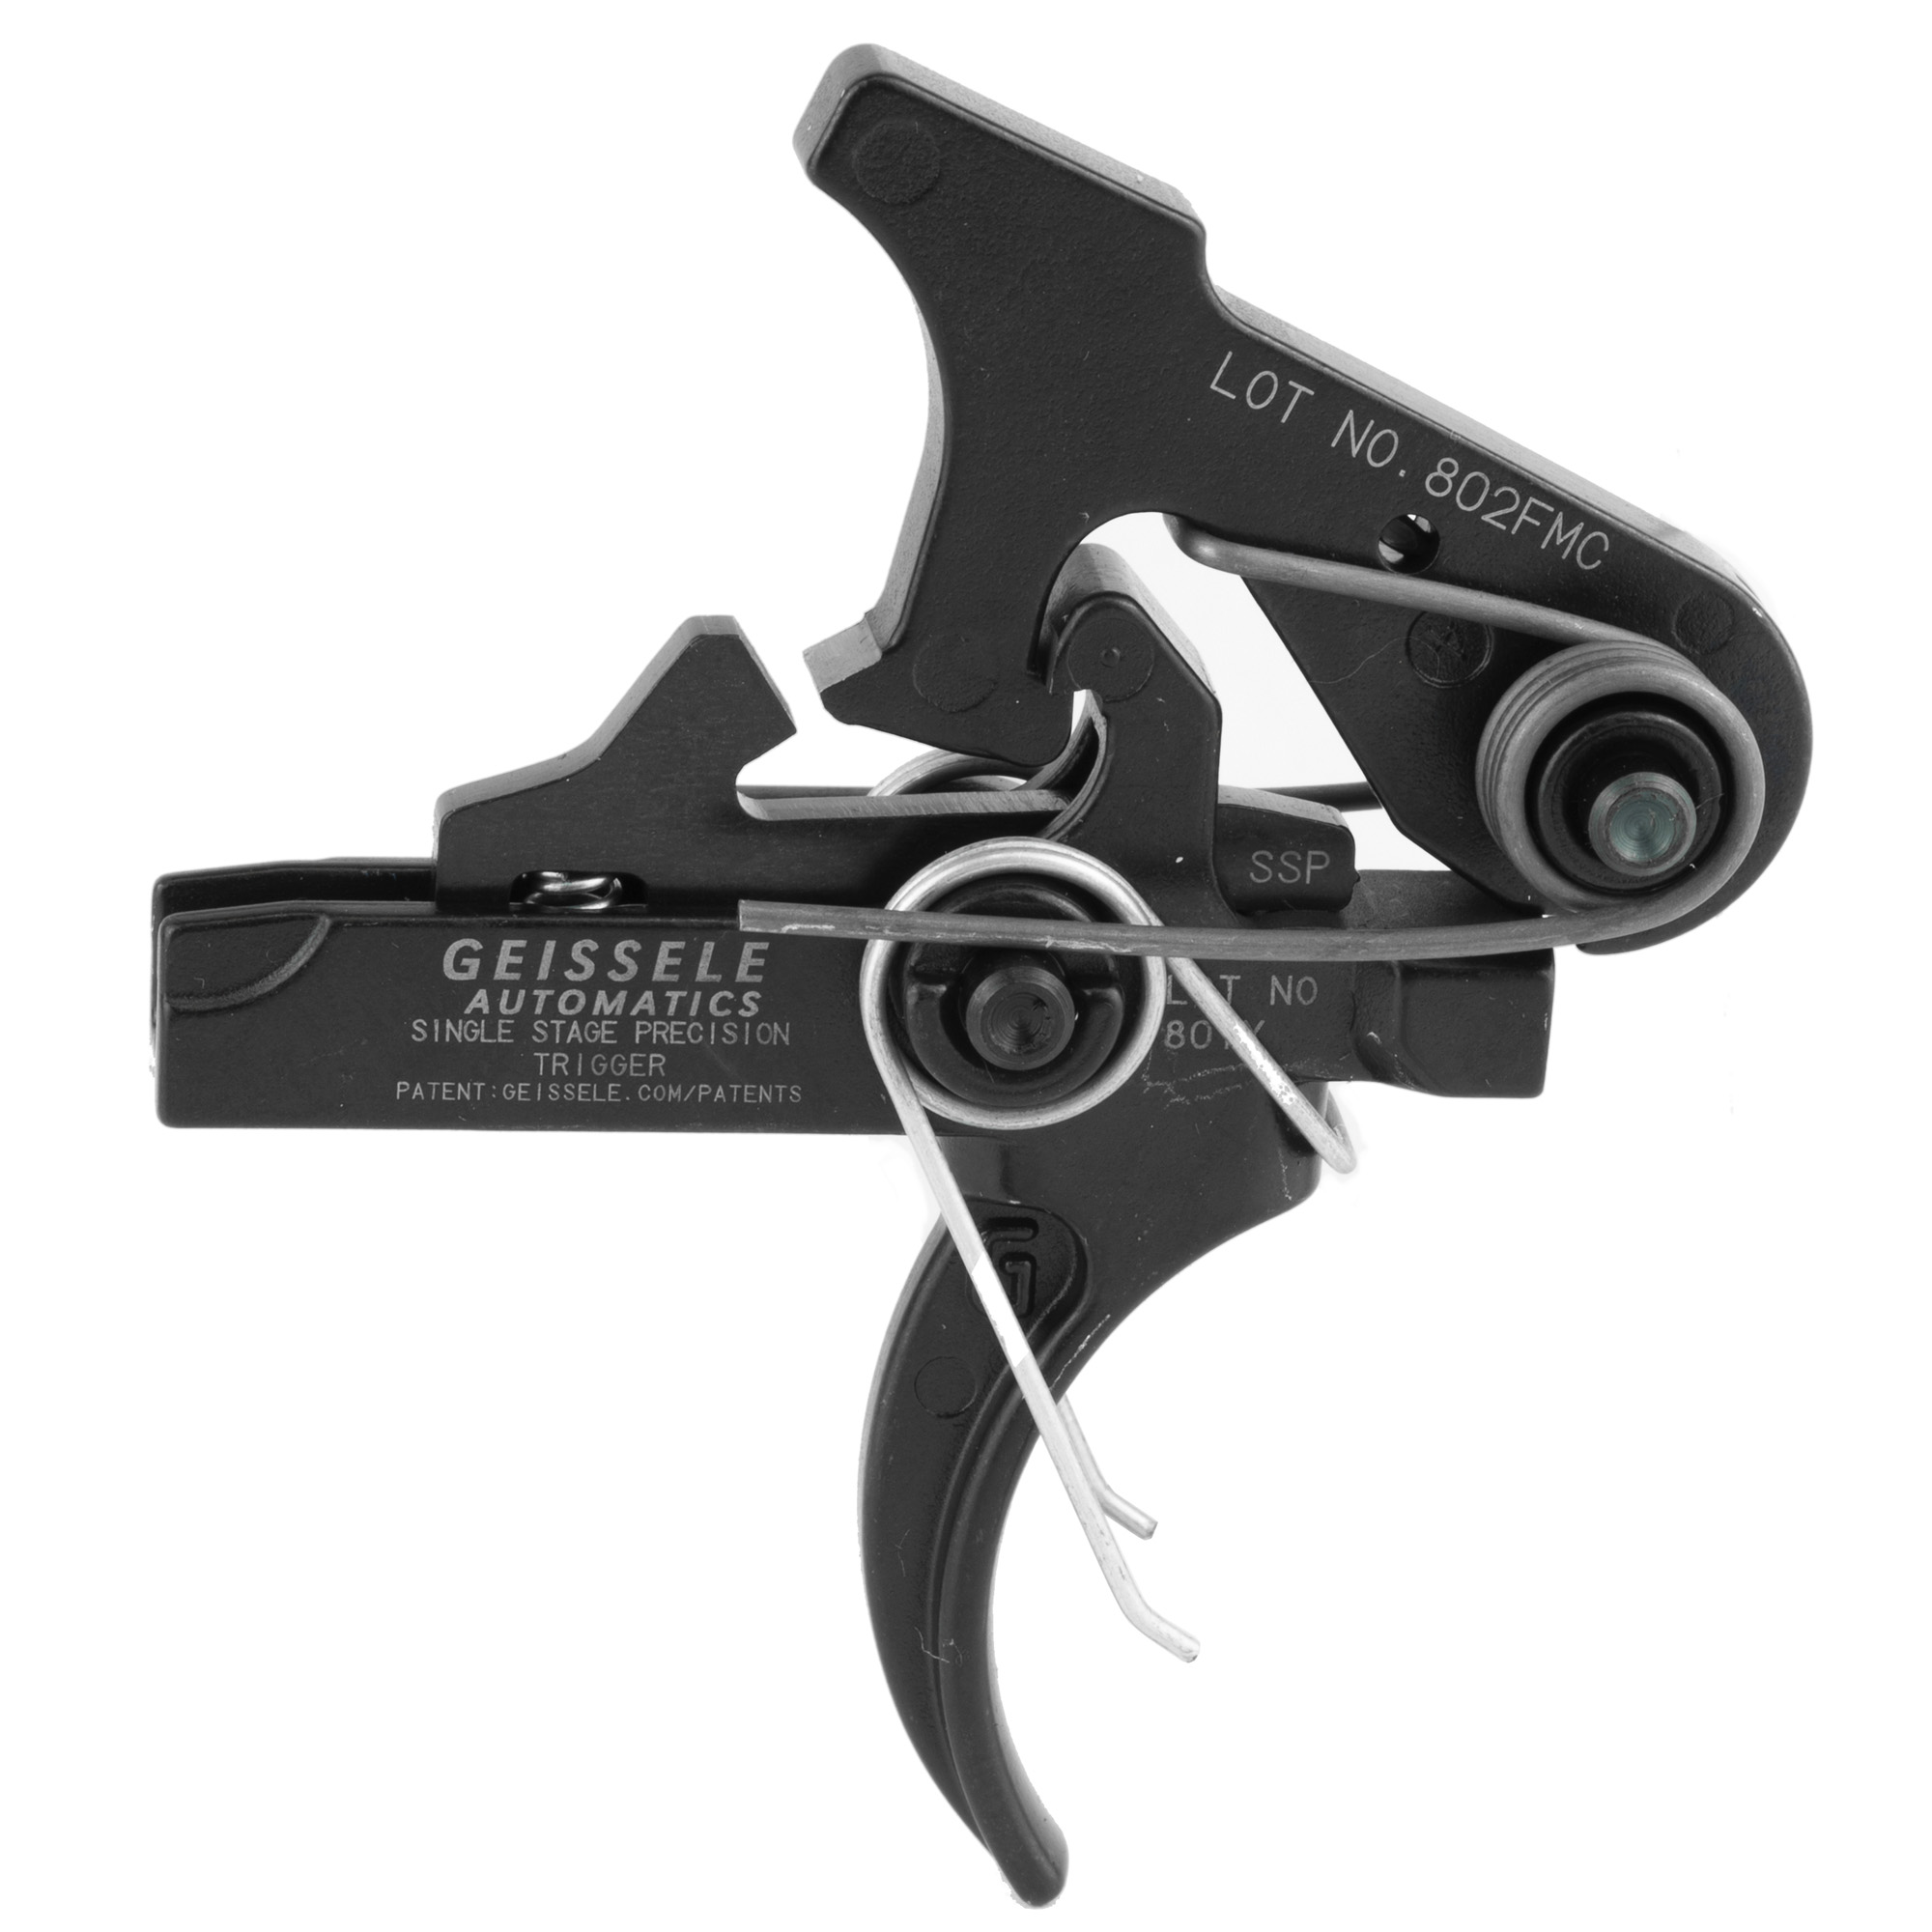 """The Single-Stage Precision (SSP) is Geissele Automatics' first true single-stage trigger for the AR Platform. This drop-in trigger has no take up and a super clean break. The reset is short yet still distinct"""" giving excellent feedback to the shooter during target engagement. Combining these two capabilities provides the shooter with the confidence necessary when precision and accuracy are essential for the task at hand. The SSP features superior materials and the most modern manufacturing techniques. The SSP trigger is made from S7 Tool Steel and precision machined from the latest wire EDM technology. All parts are finished in durable corrosion resistant black oxide. The Geissele SSP is a precision trigger"""" engineered for maximum reliability and repeatability while engaging targets at long distance"""" whether it's being used during duty"""" hunting or target shooting."""